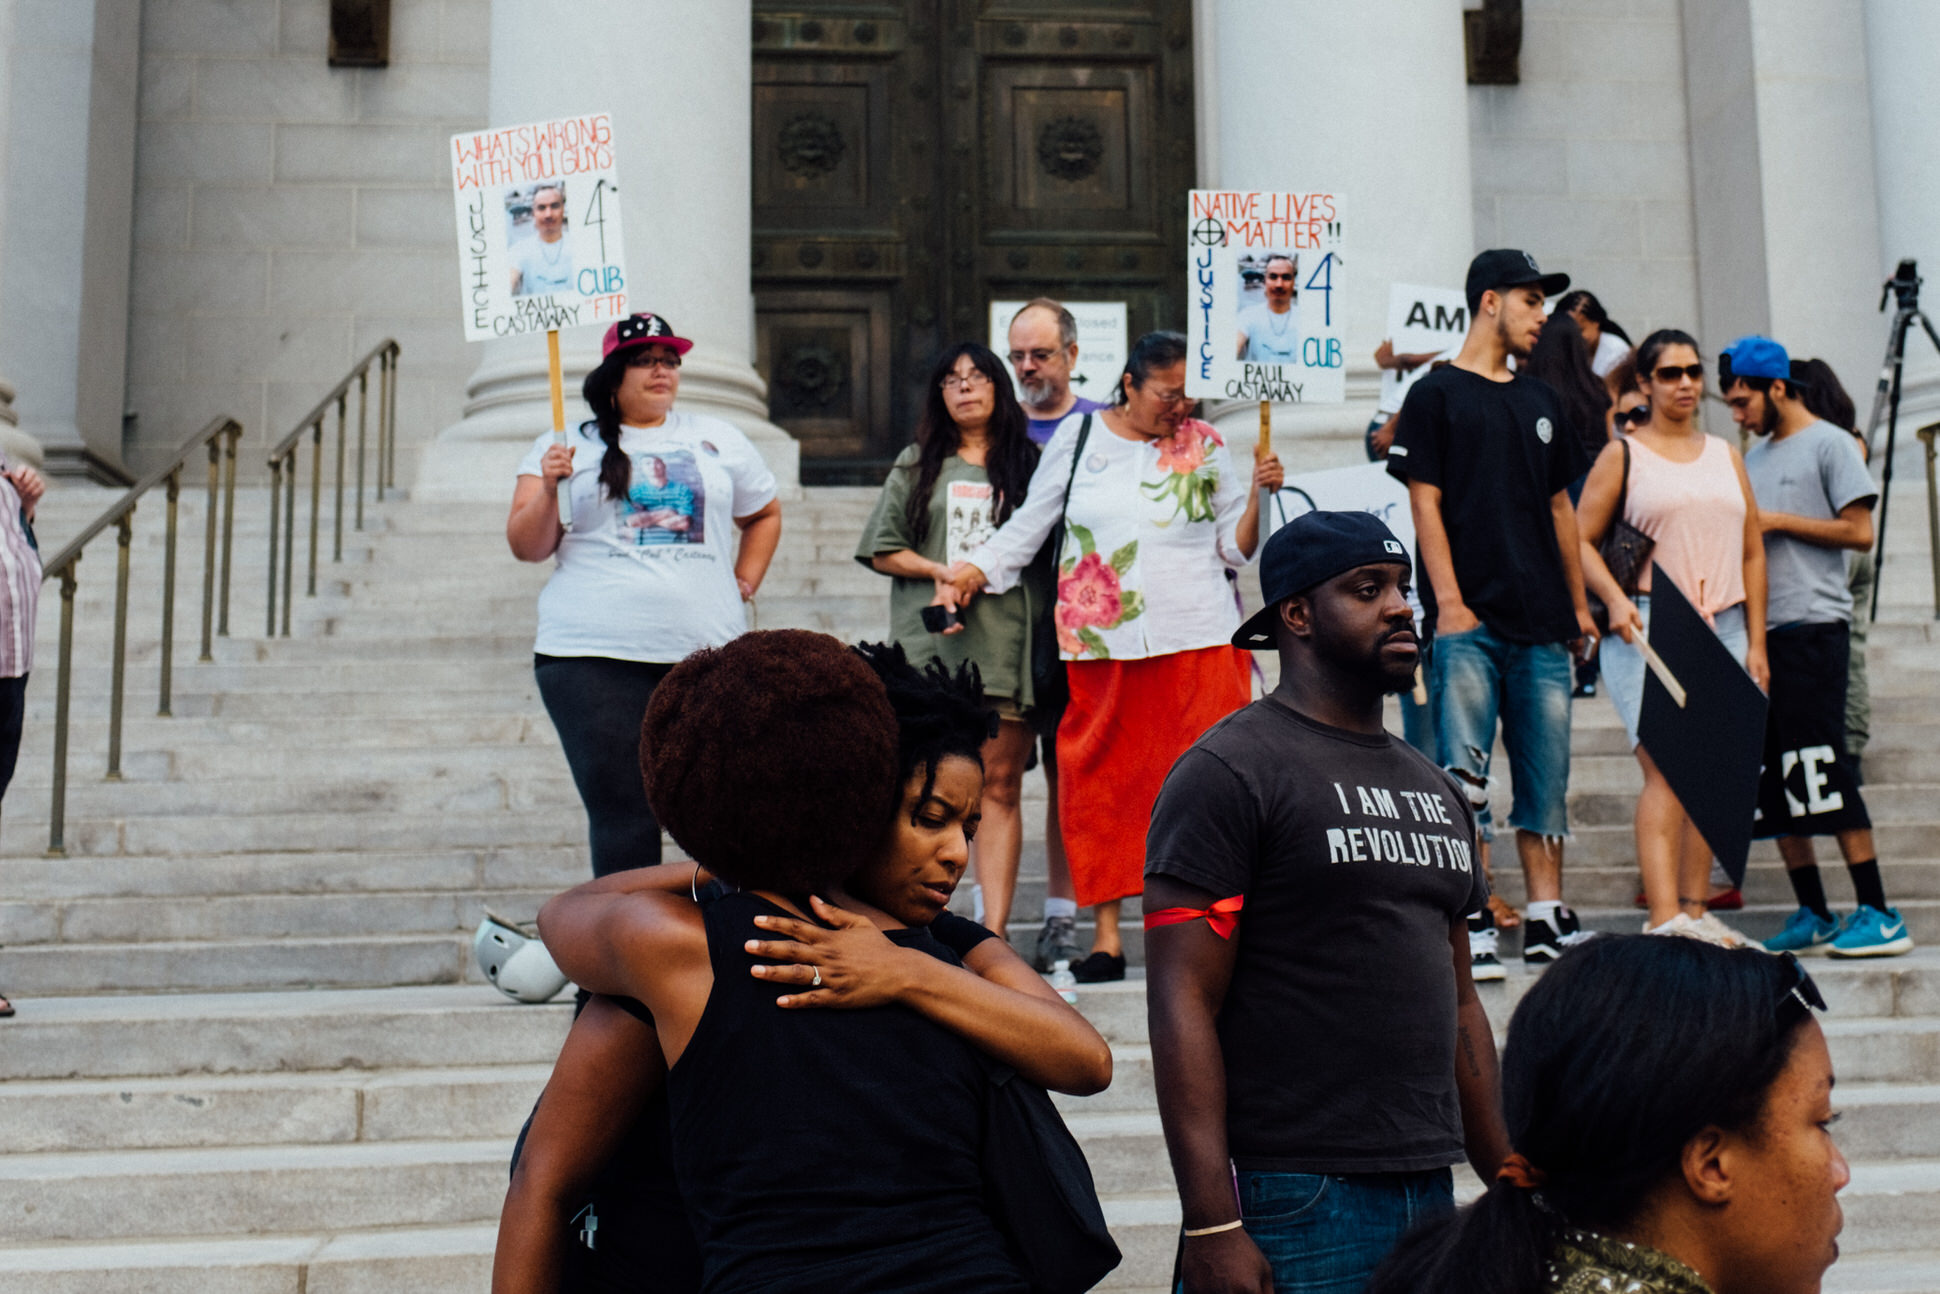 Participants of the BLM 5280 march embrace after a vigil is held on the steps of Denver's District Courthouse for victims of police violence.